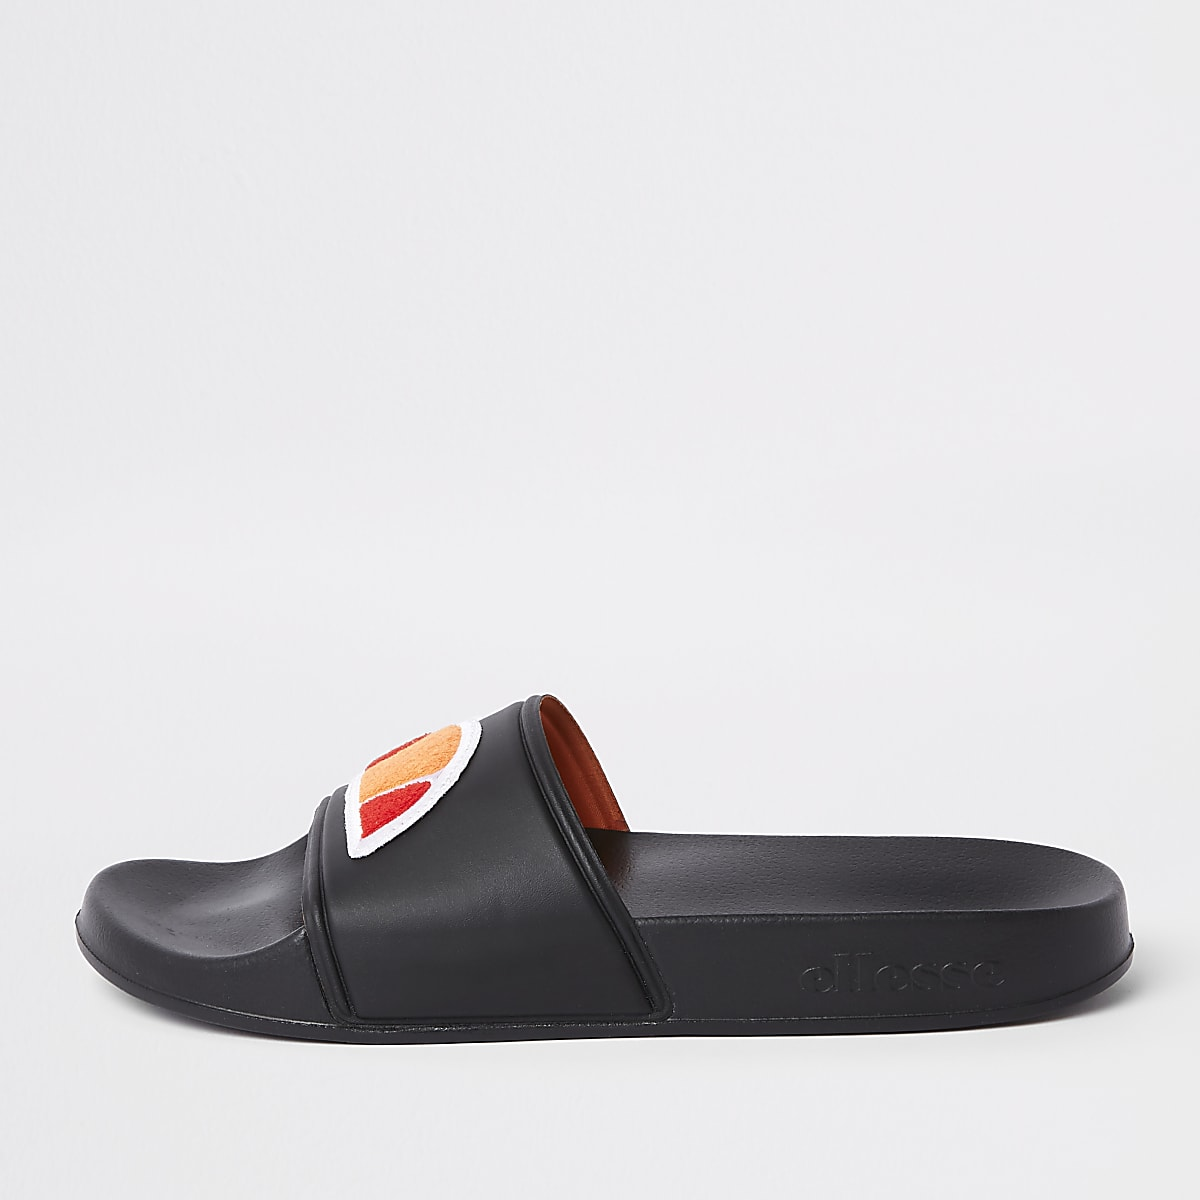 6297b6ef106 Ellesse black sliders